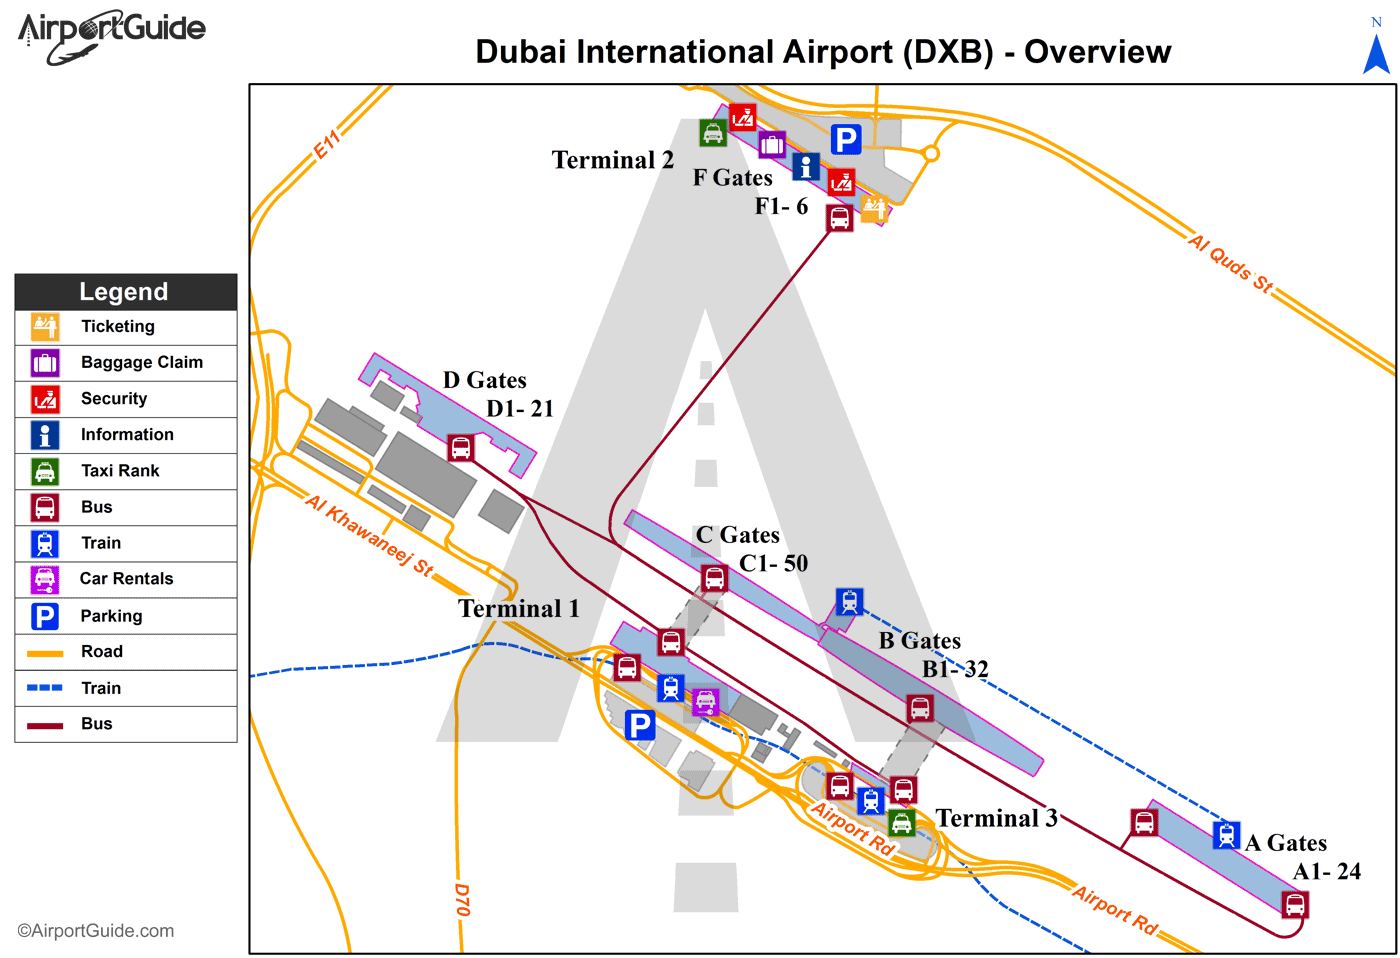 Dubai - Dubai International (DXB) Airport Terminal Map - Overview